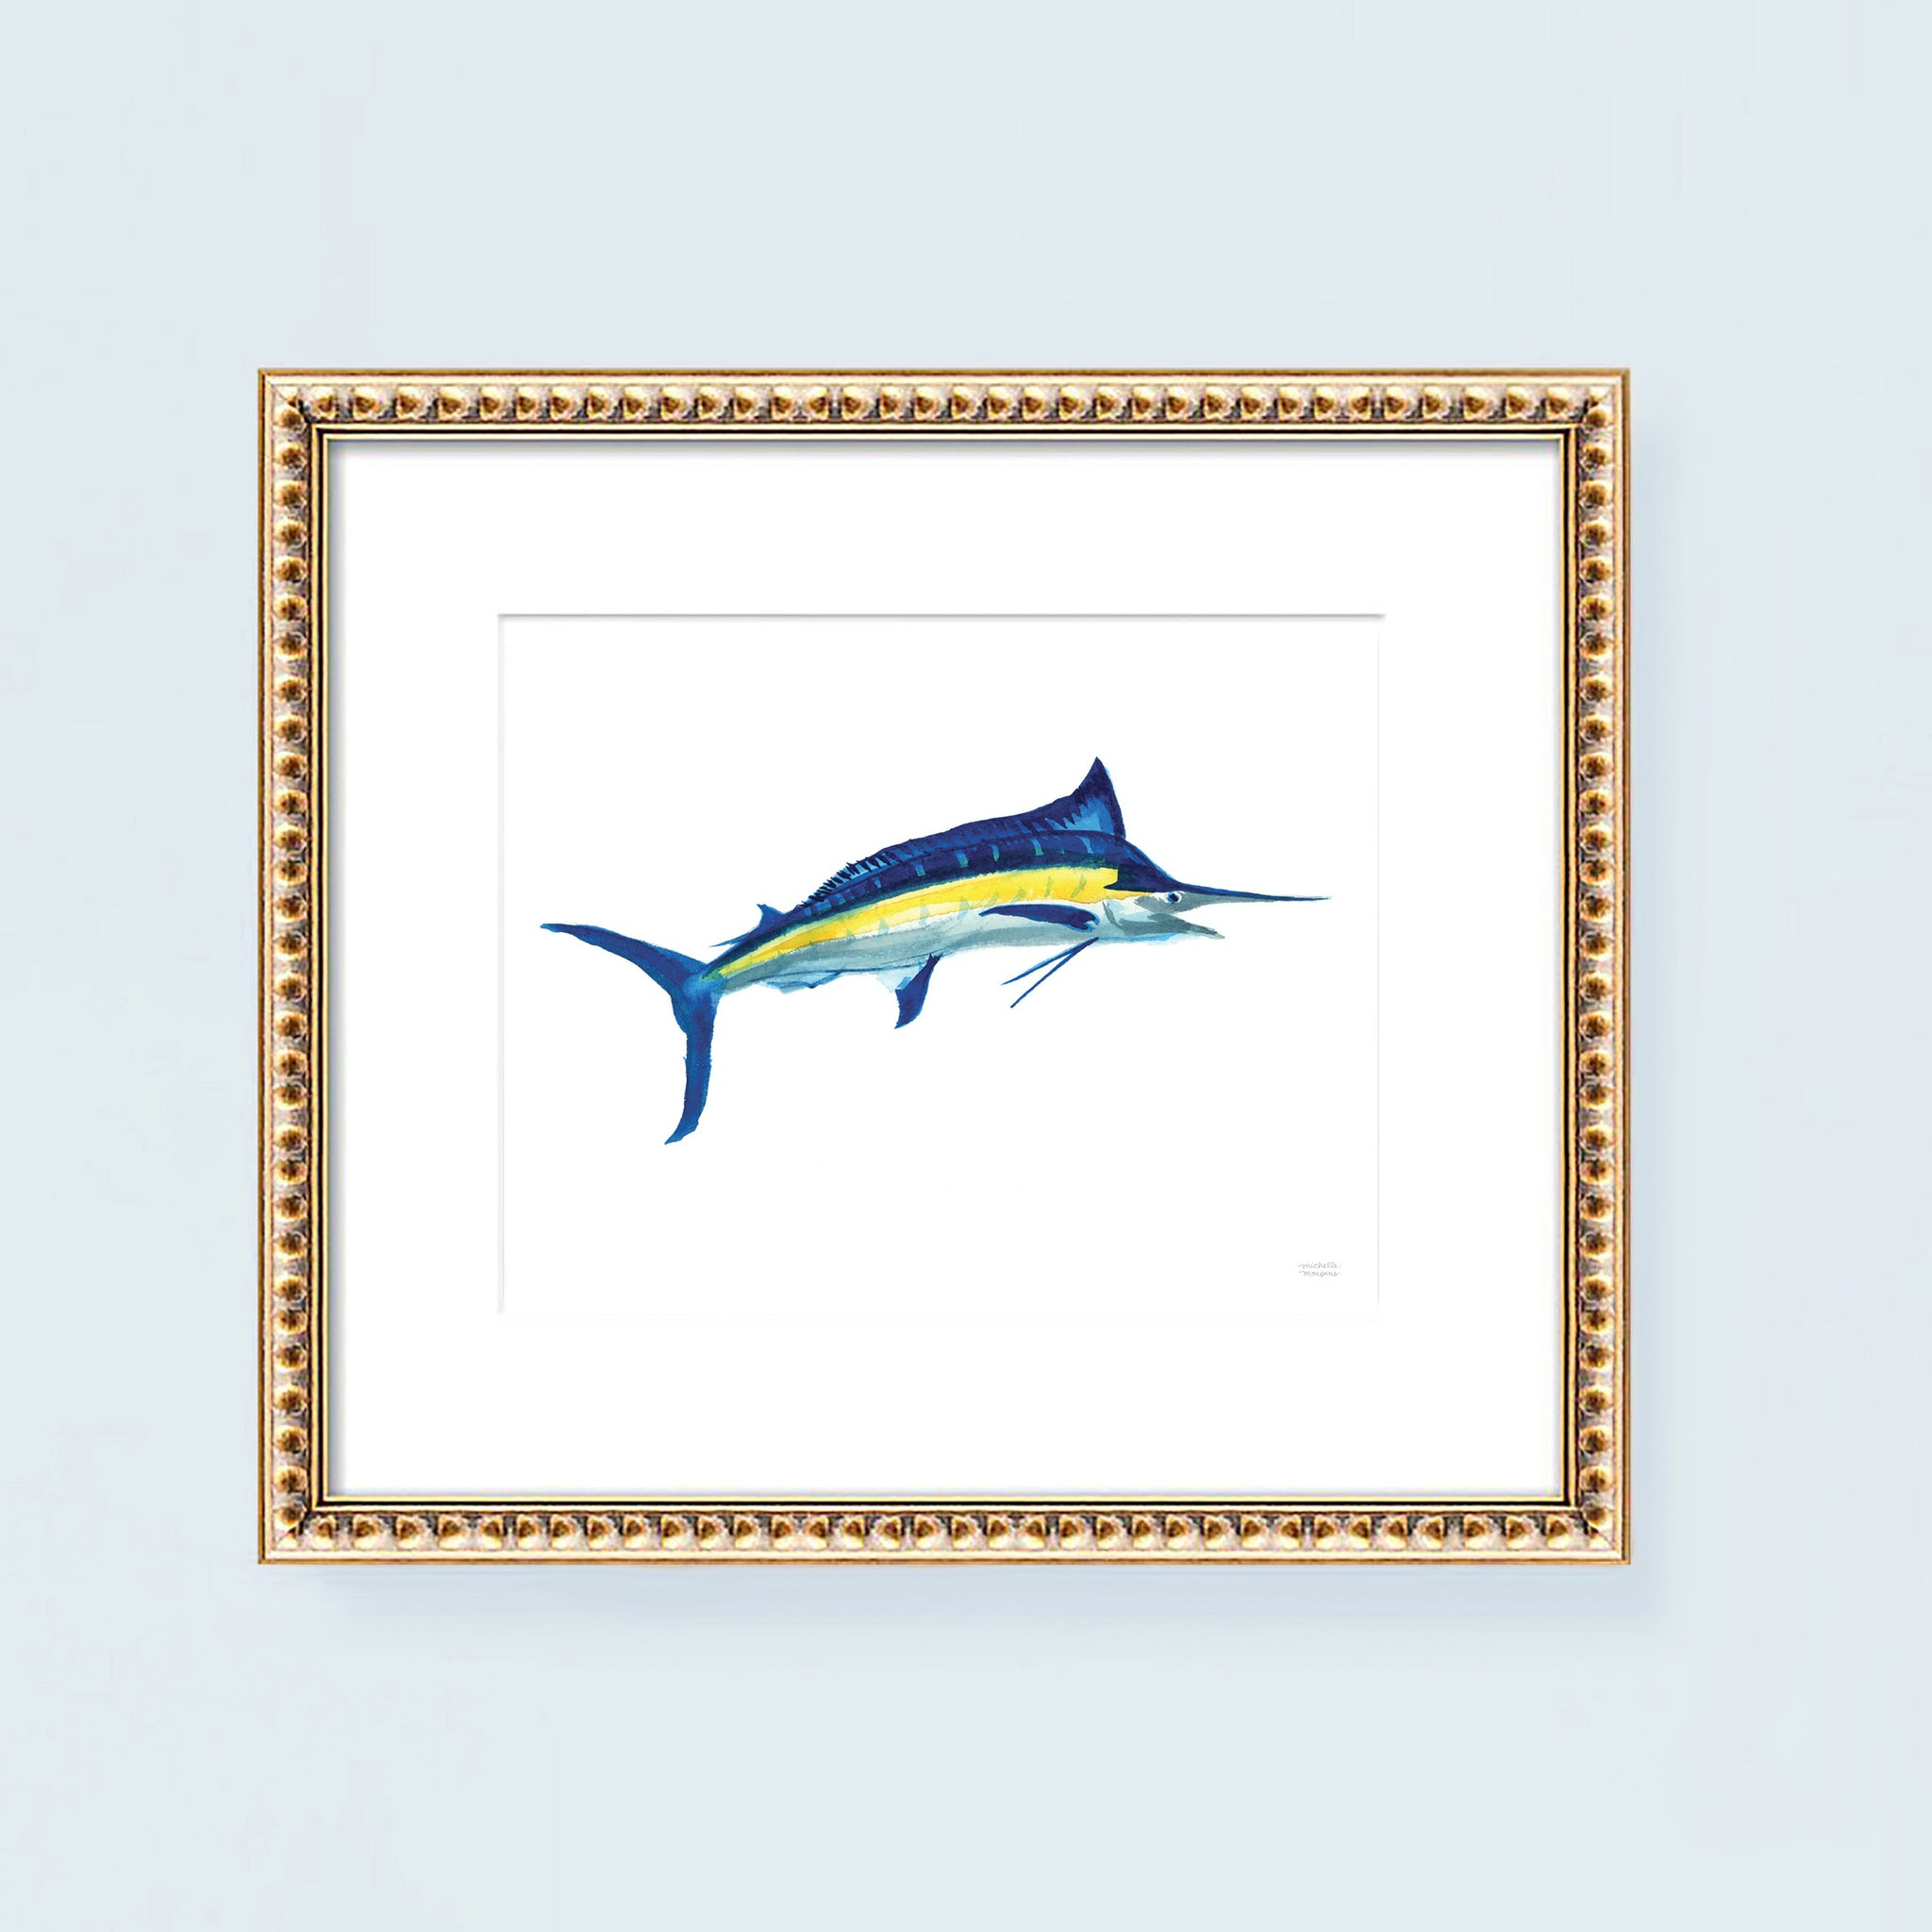 Marlin fish bill fish watercolor painting art print.